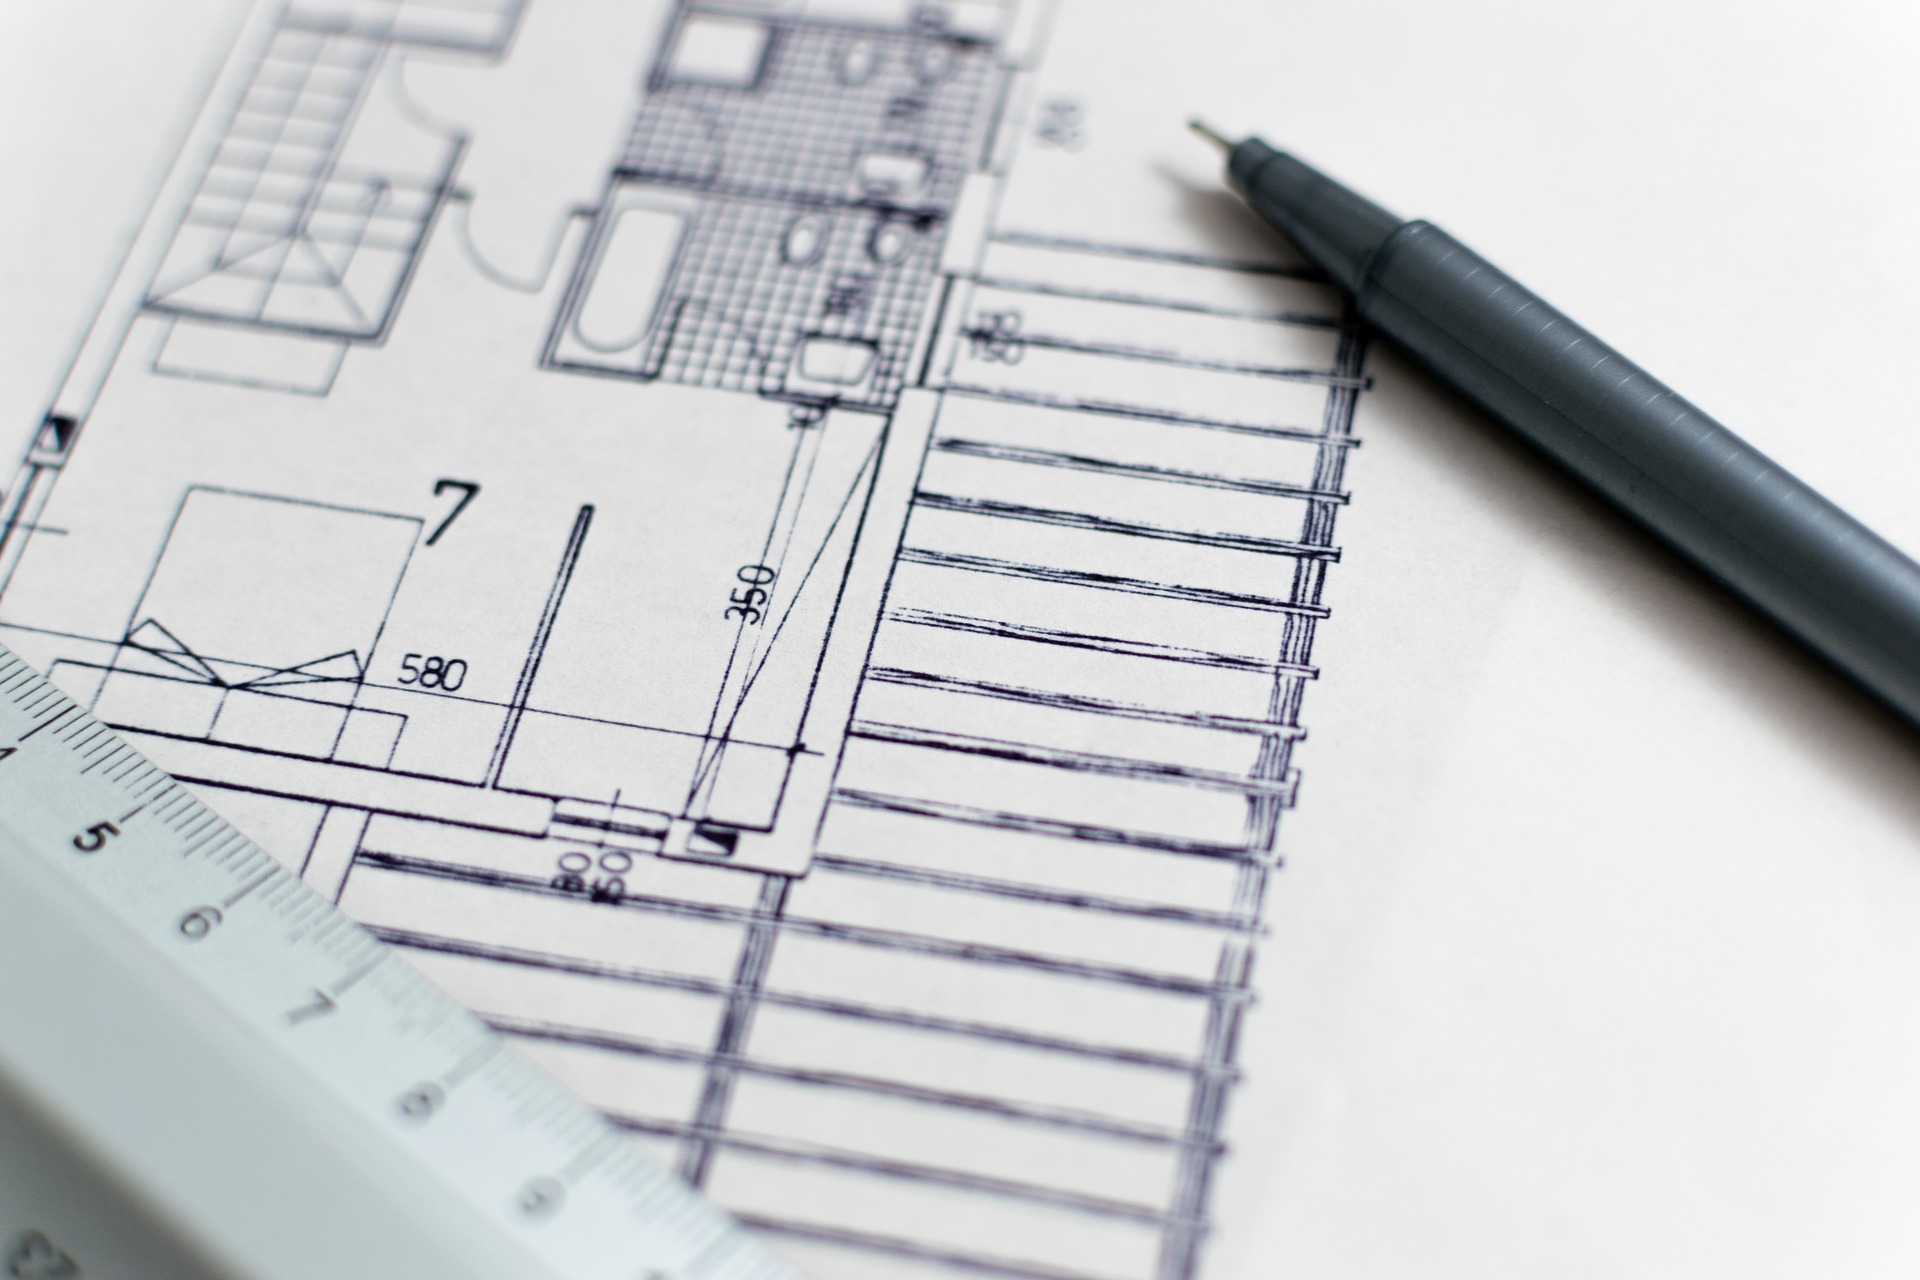 A property developers guide to planning permission